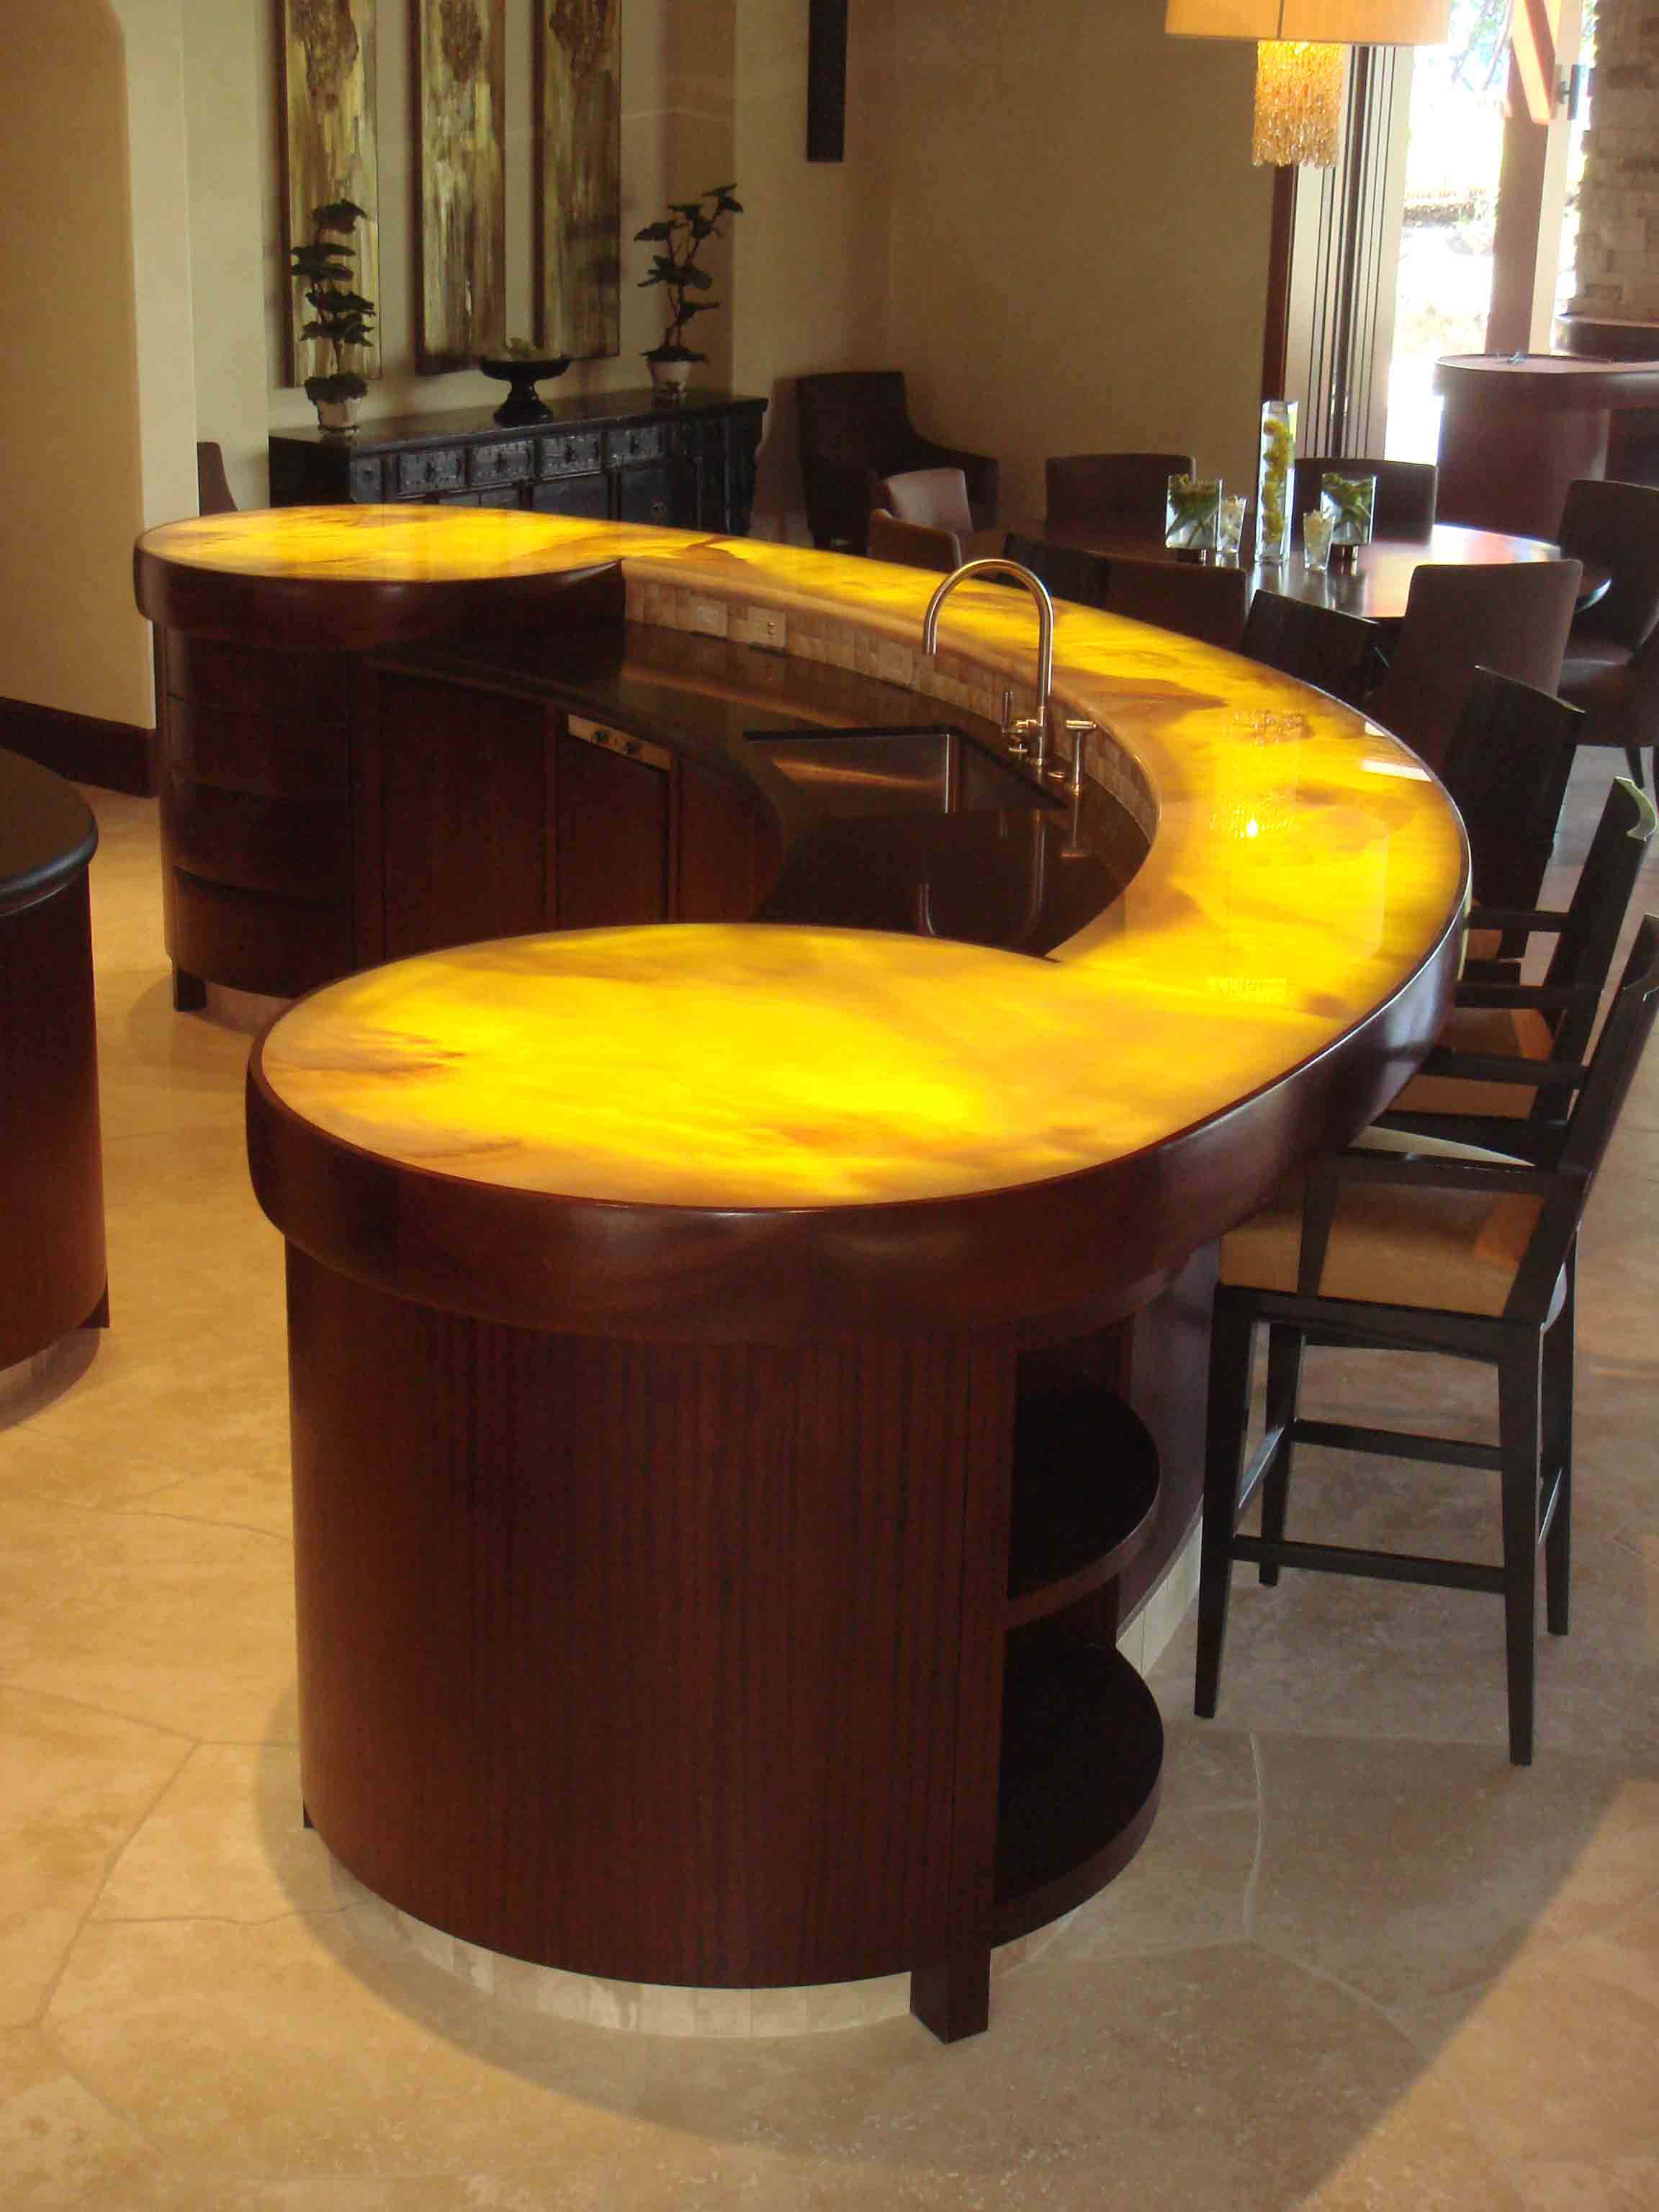 Designs projects of chad reitan for Cool kitchen tables